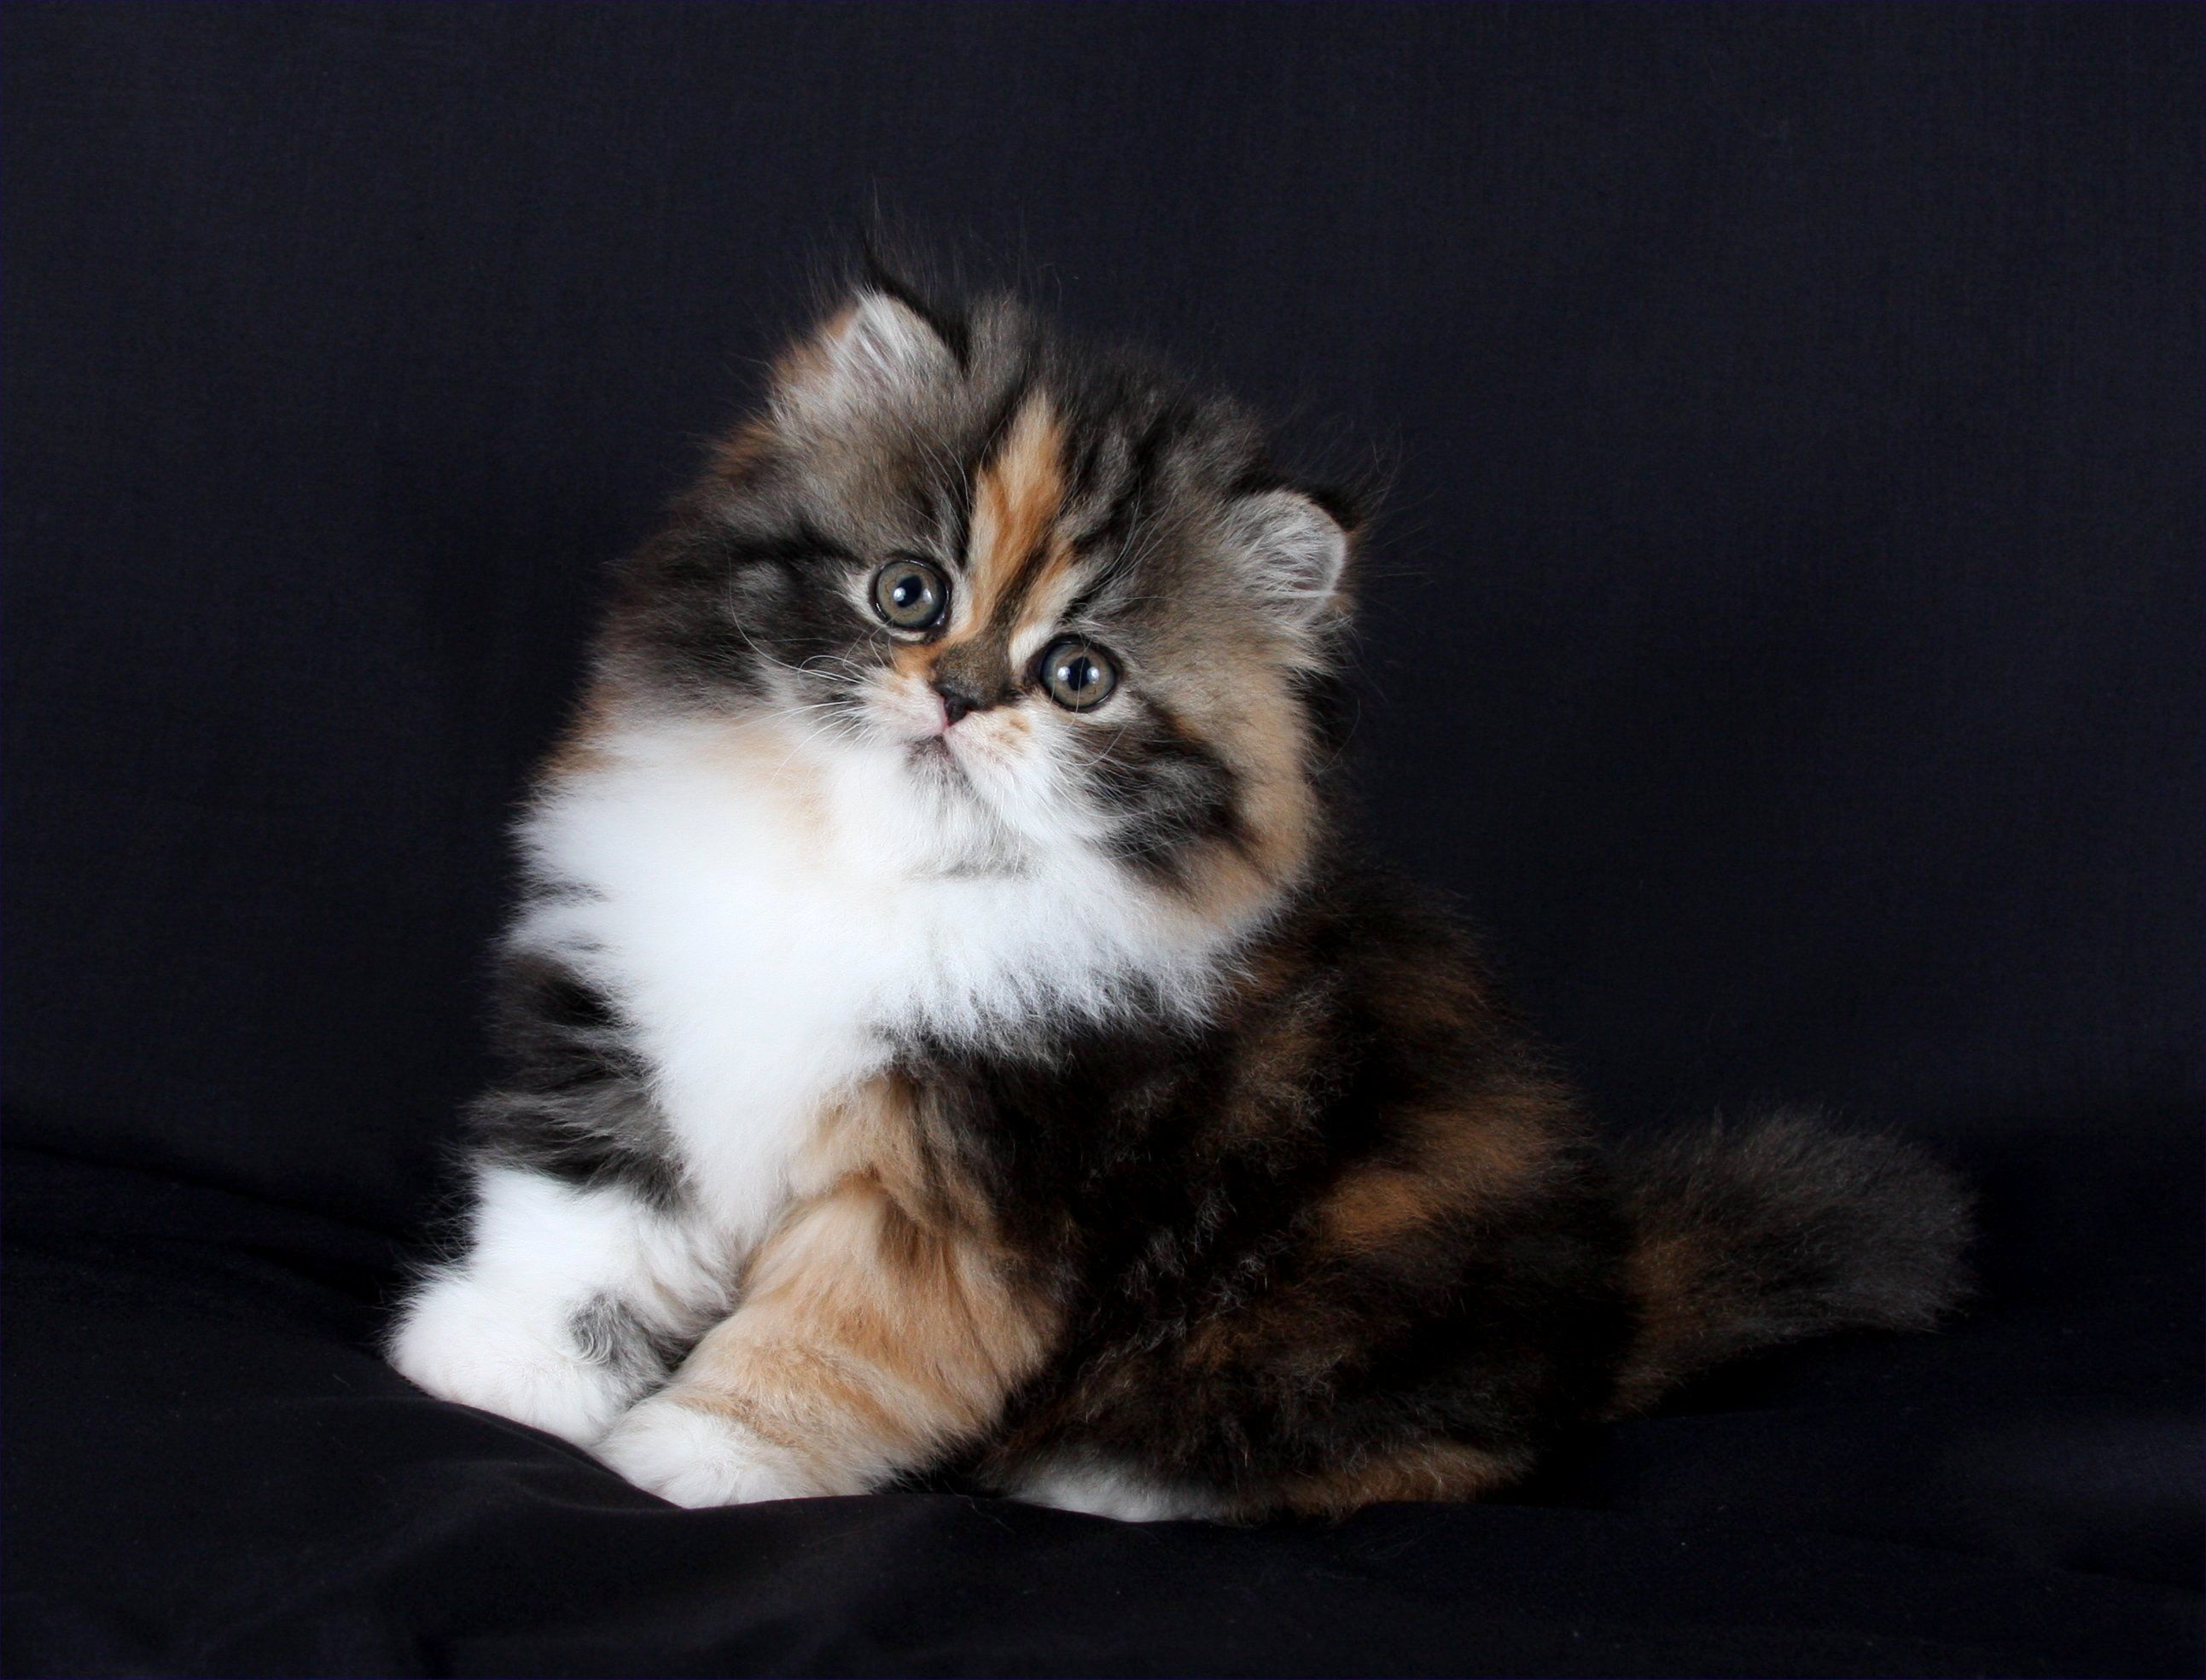 Seal point himalayan kittens for sale uk